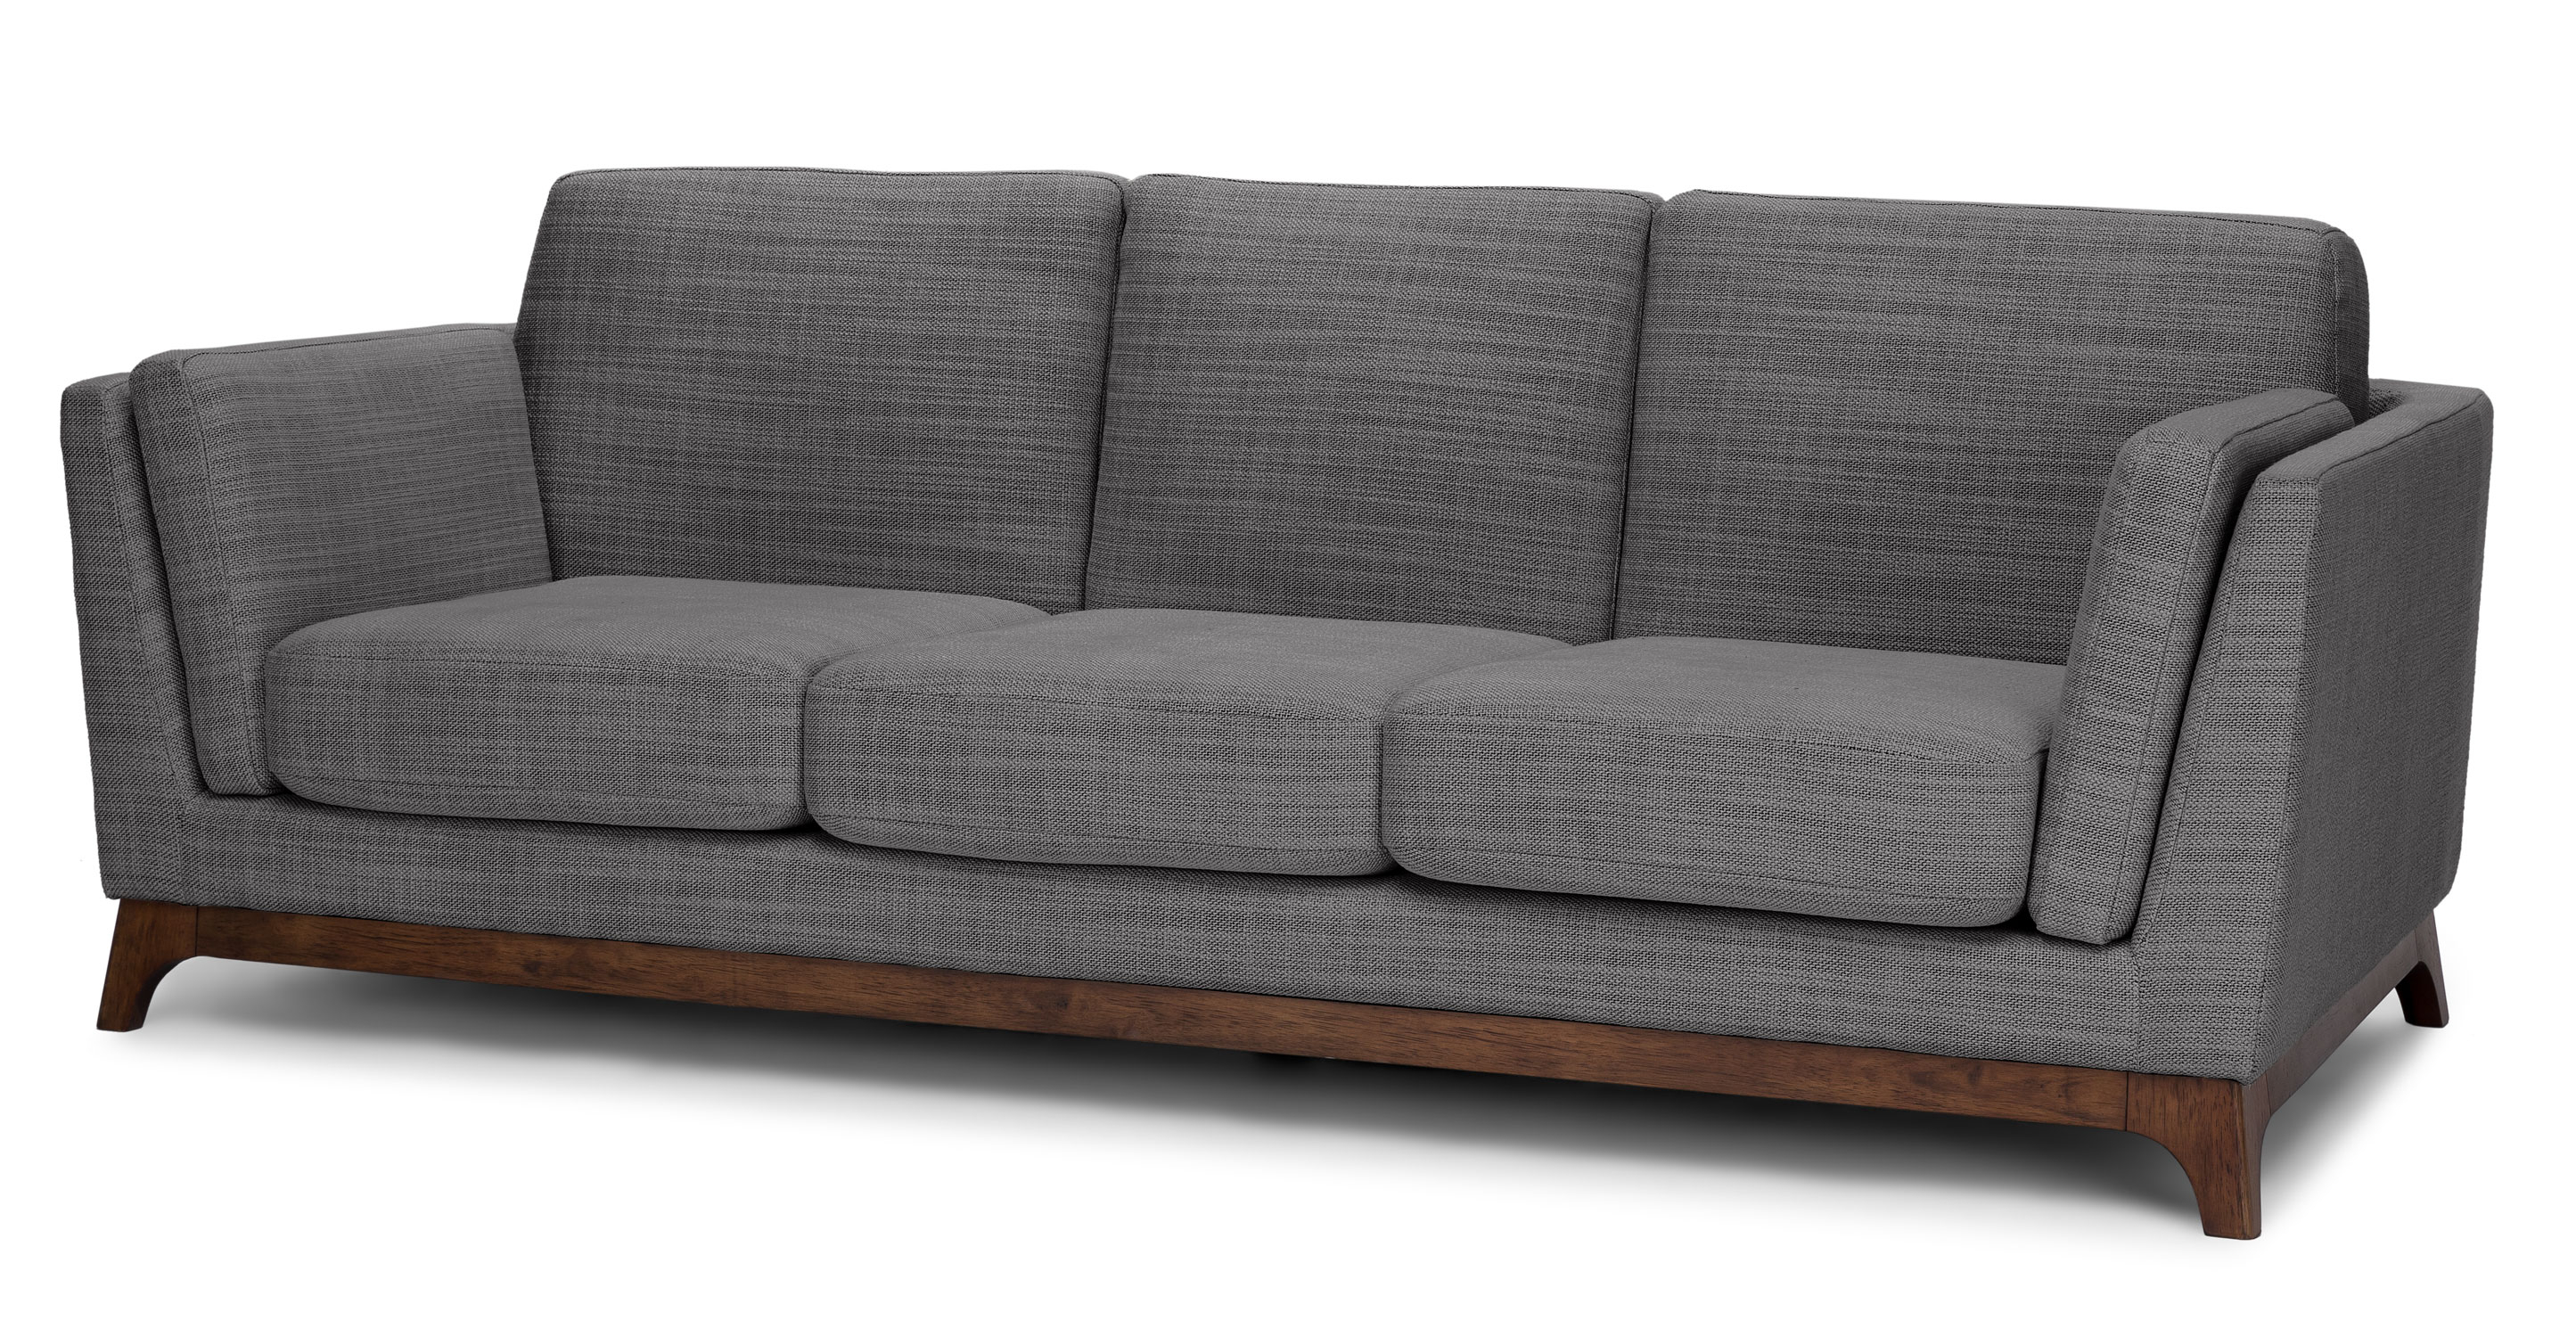 High Style, Low Price: Article Ceni Sofa In Pyrite Gray - Visual pertaining to Aquarius Dark Grey Sofa Chairs